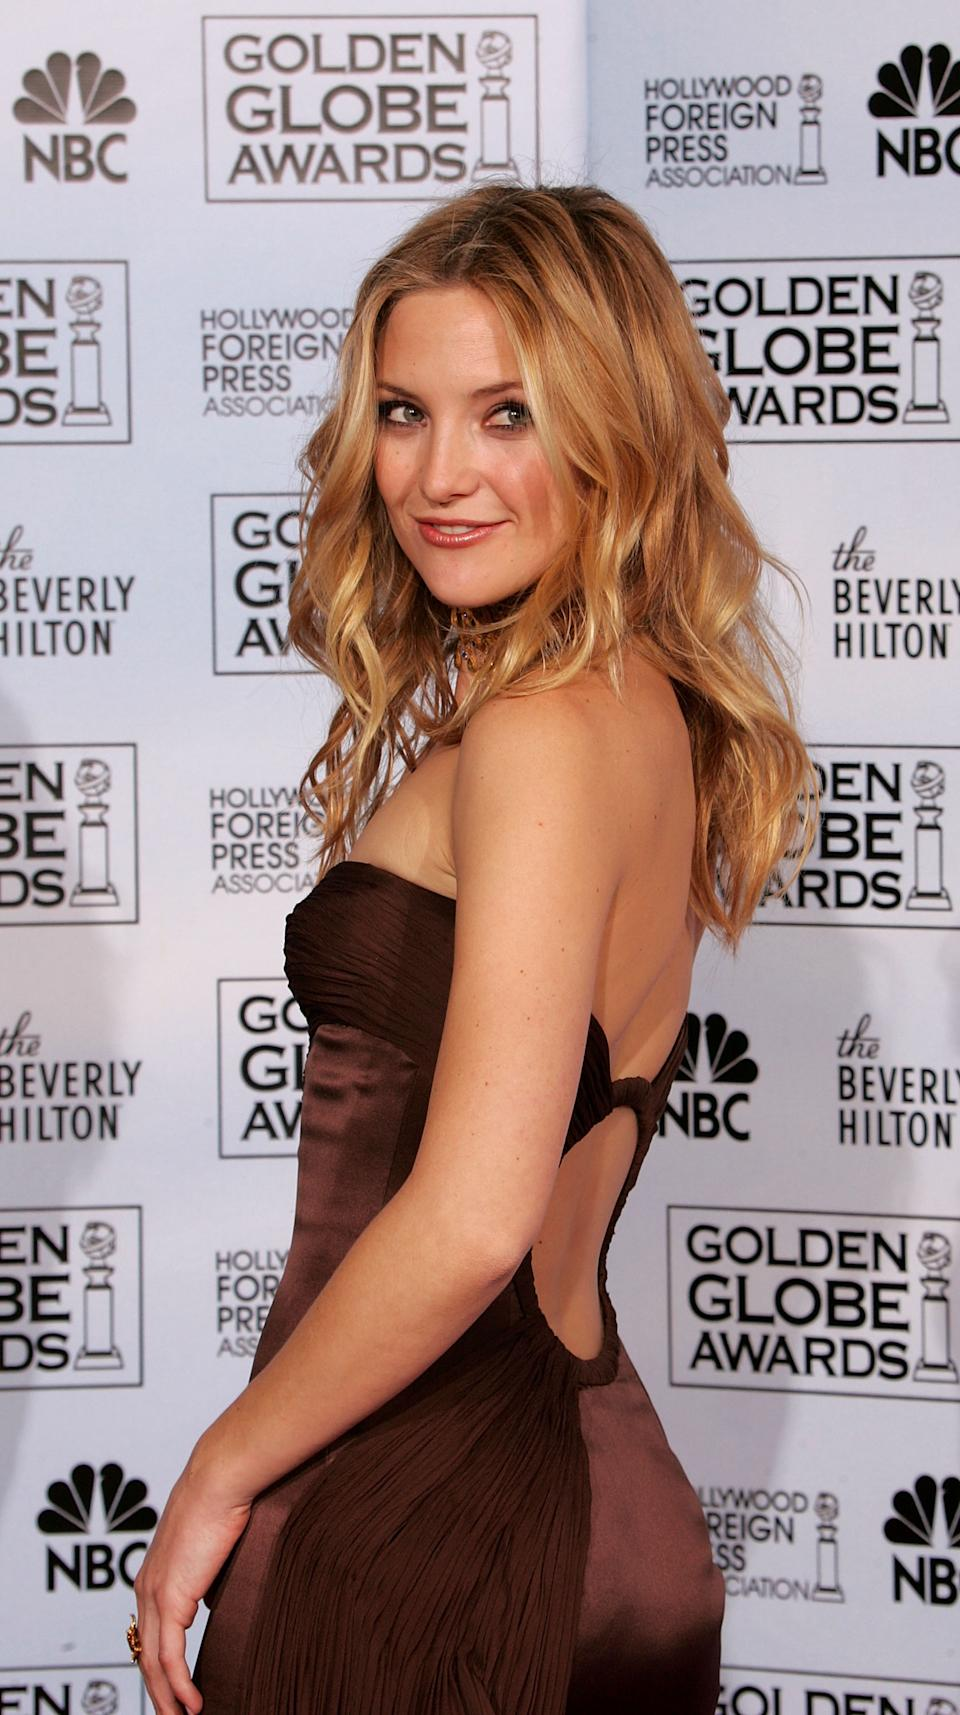 Kate Hudson poses backstage during the 62nd Annual Golden Globe Awards at the Beverly Hilton Hotel on January 16, 2005 in Beverly Hills, California.